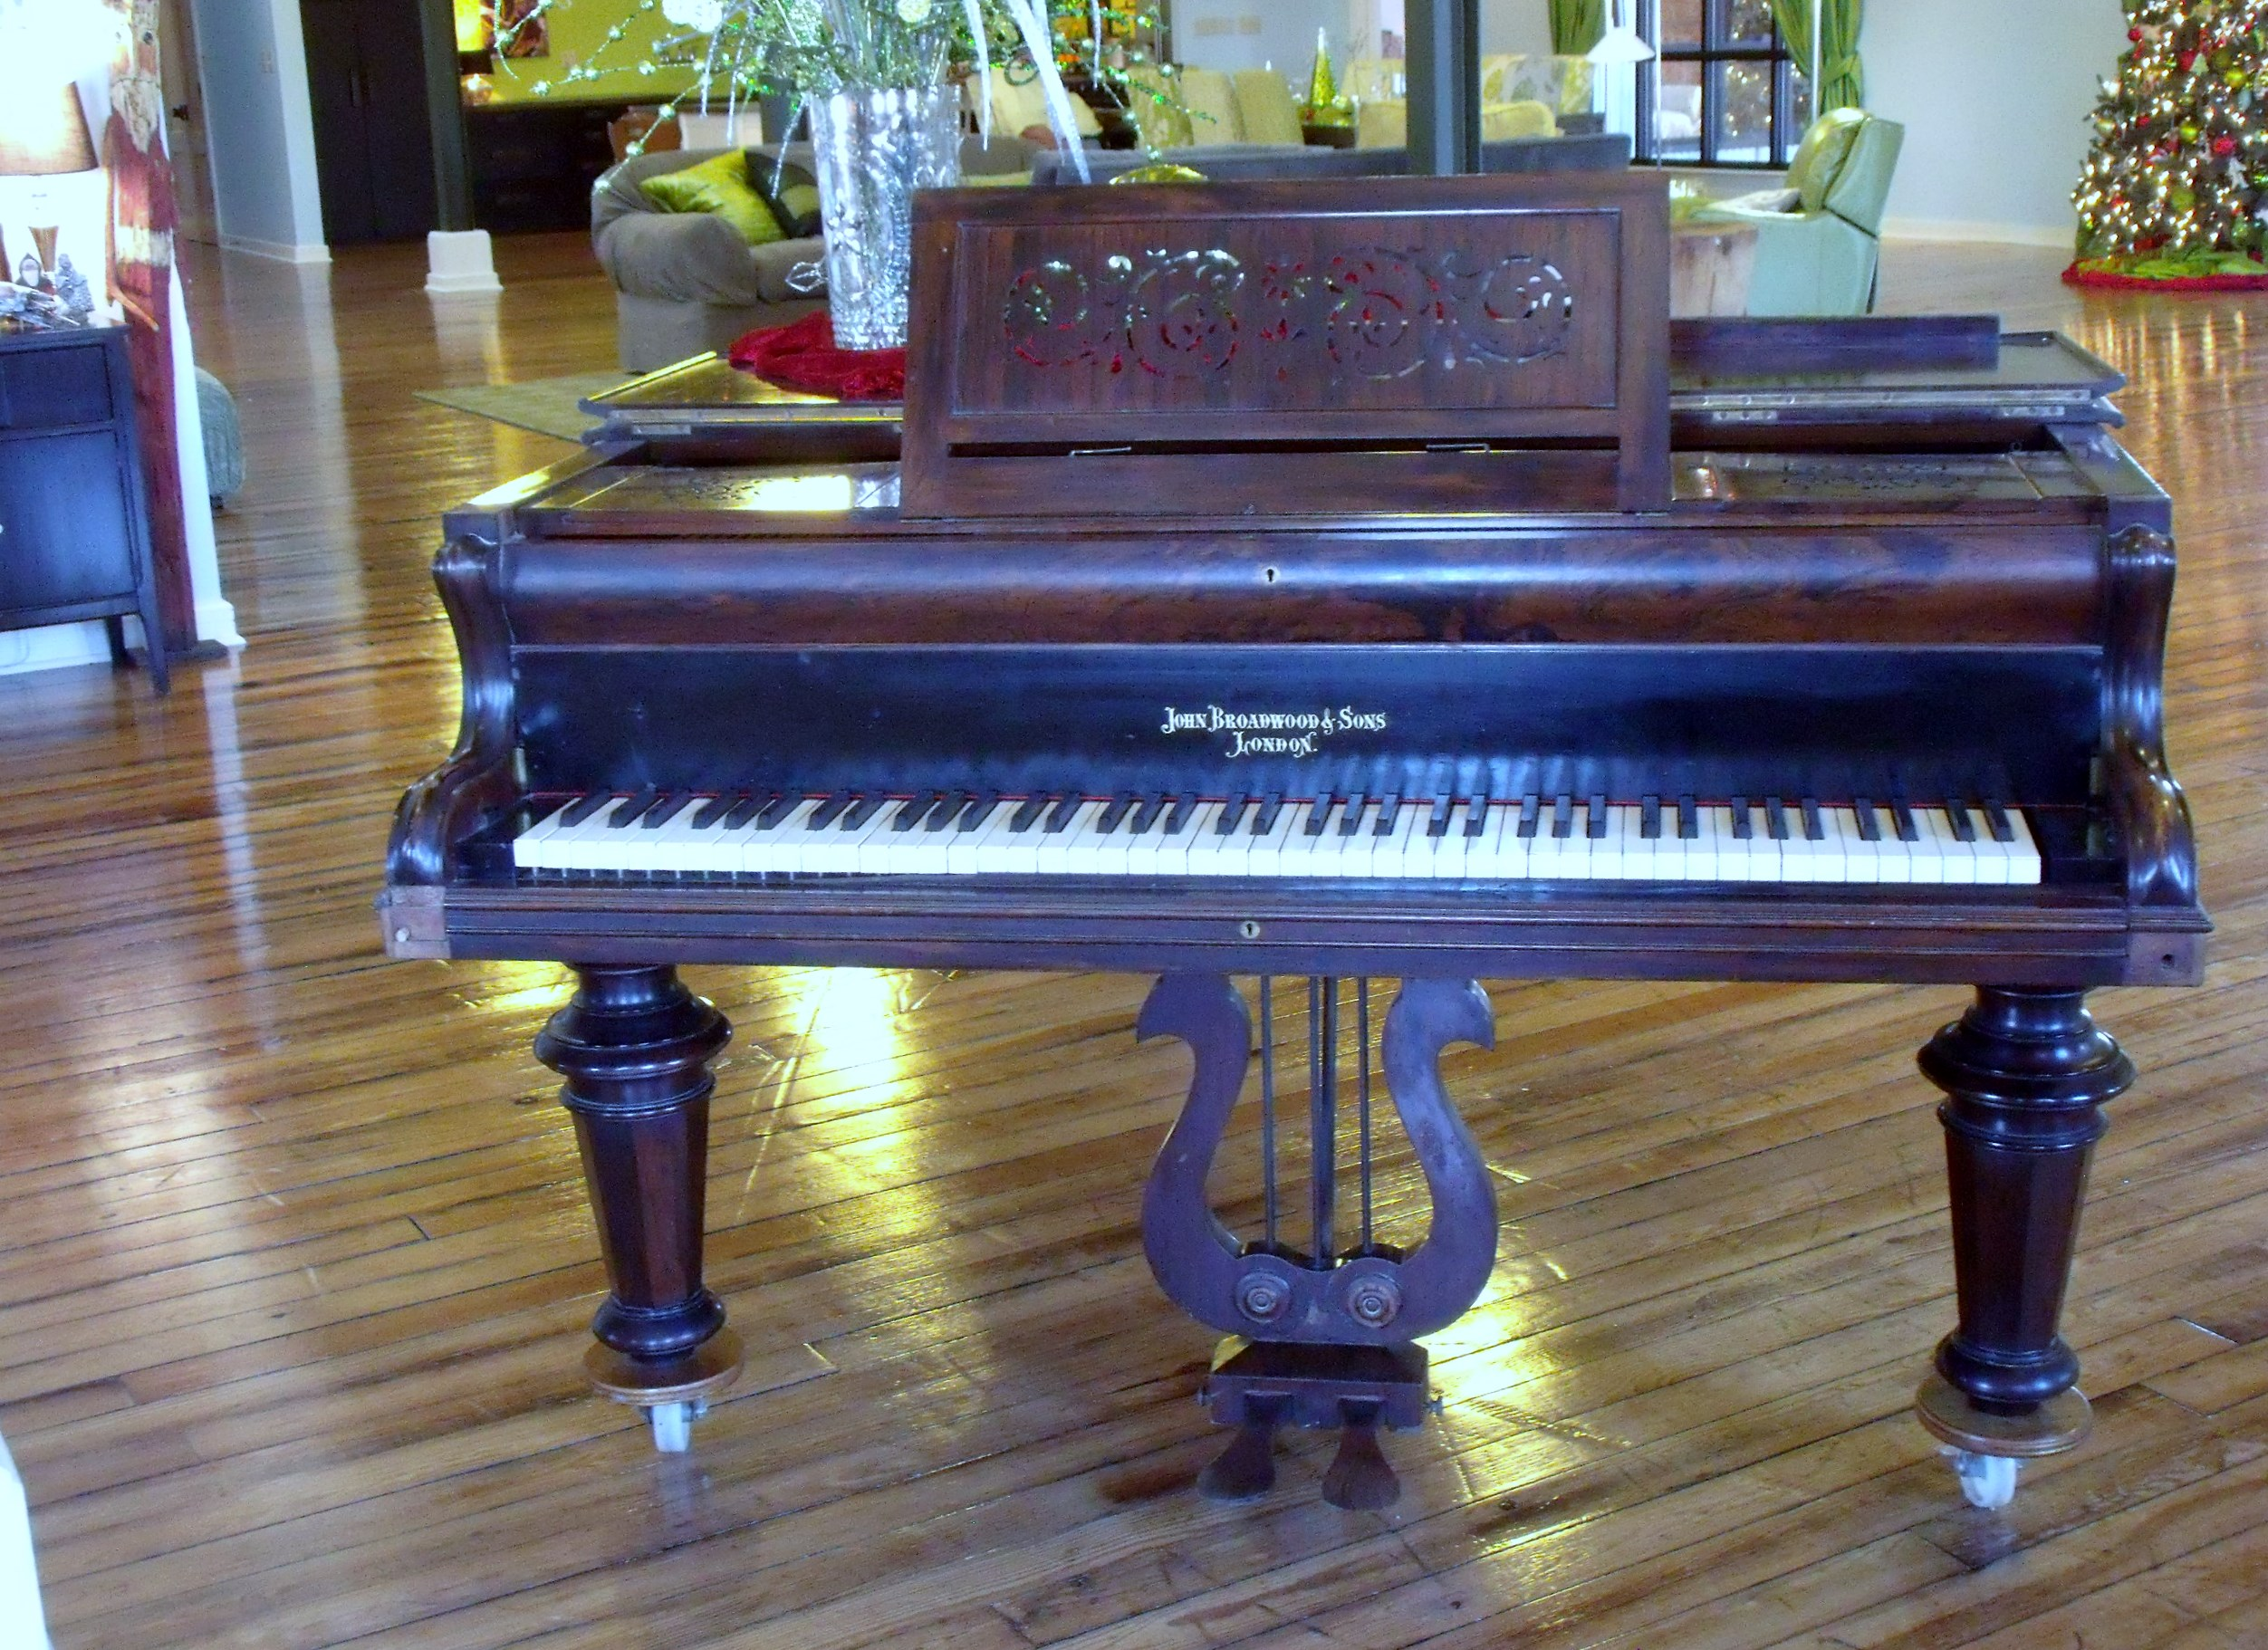 Please Note That This Piano, Built In The 1800s, Is The Same Type